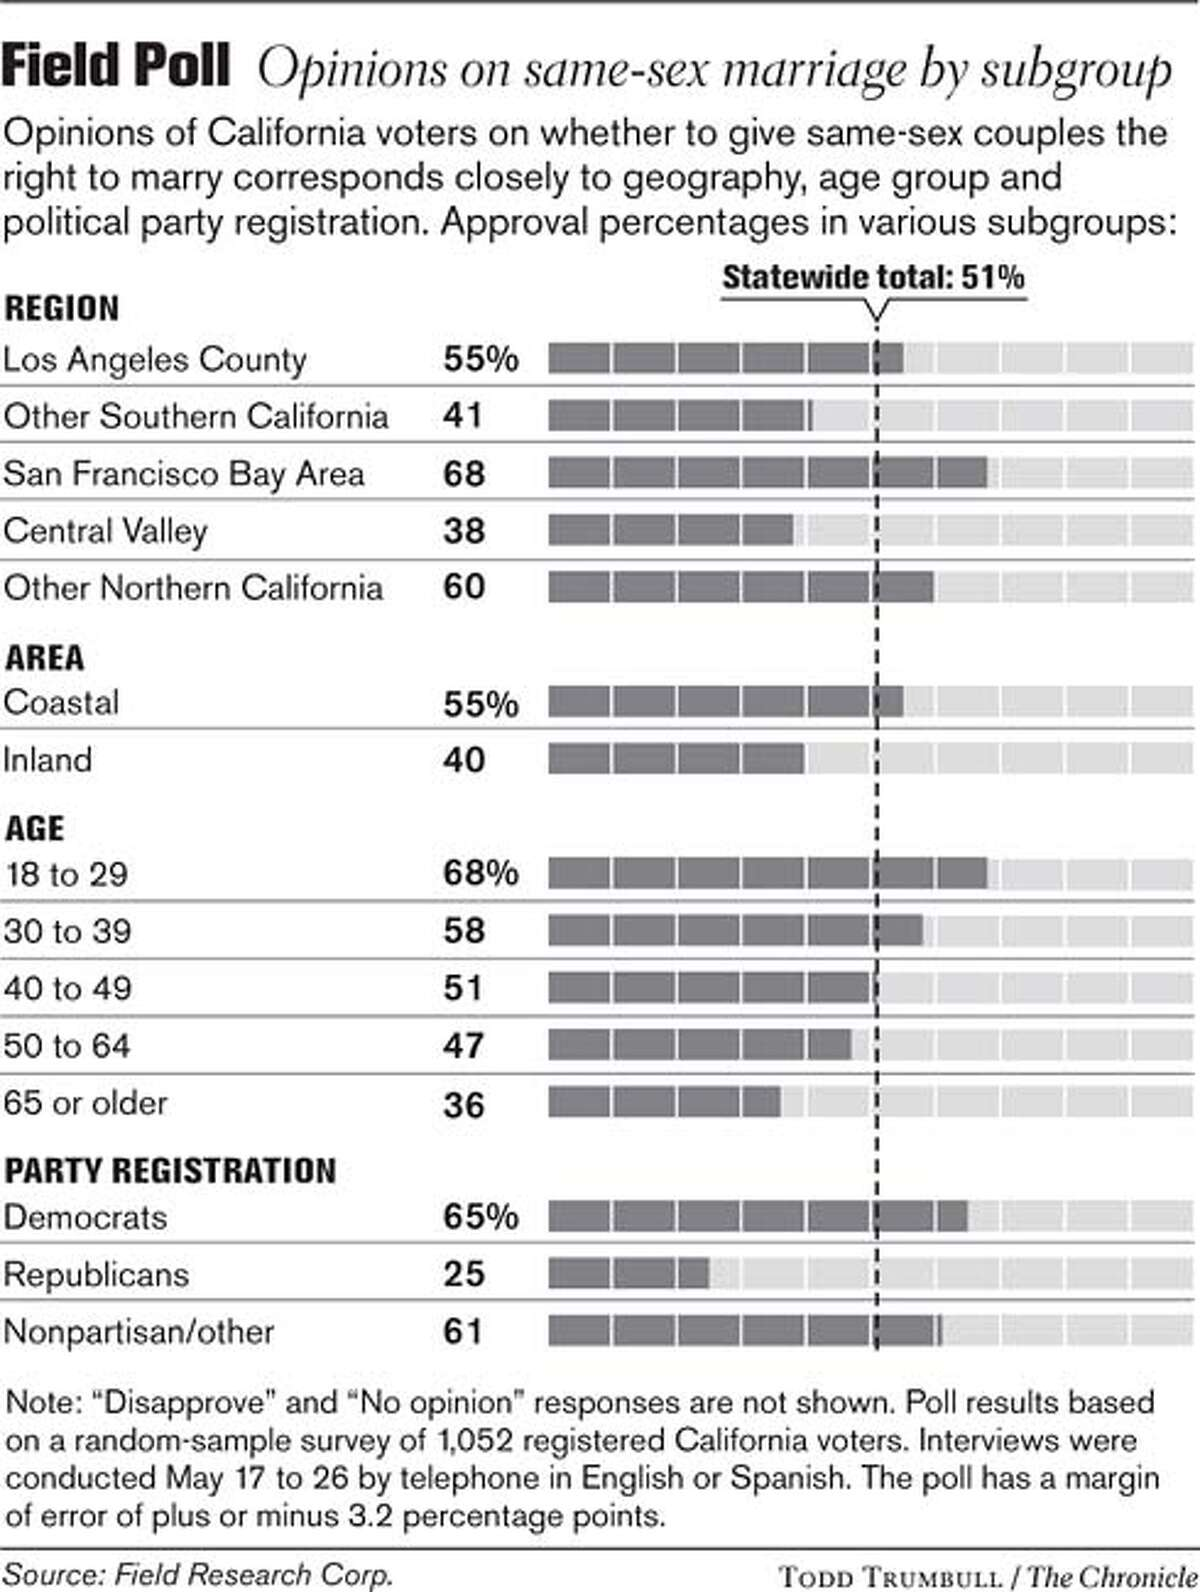 Field Poll / Opinions on same-sex marriage by subgroup. Chronicle graphic by Todd Trumbull